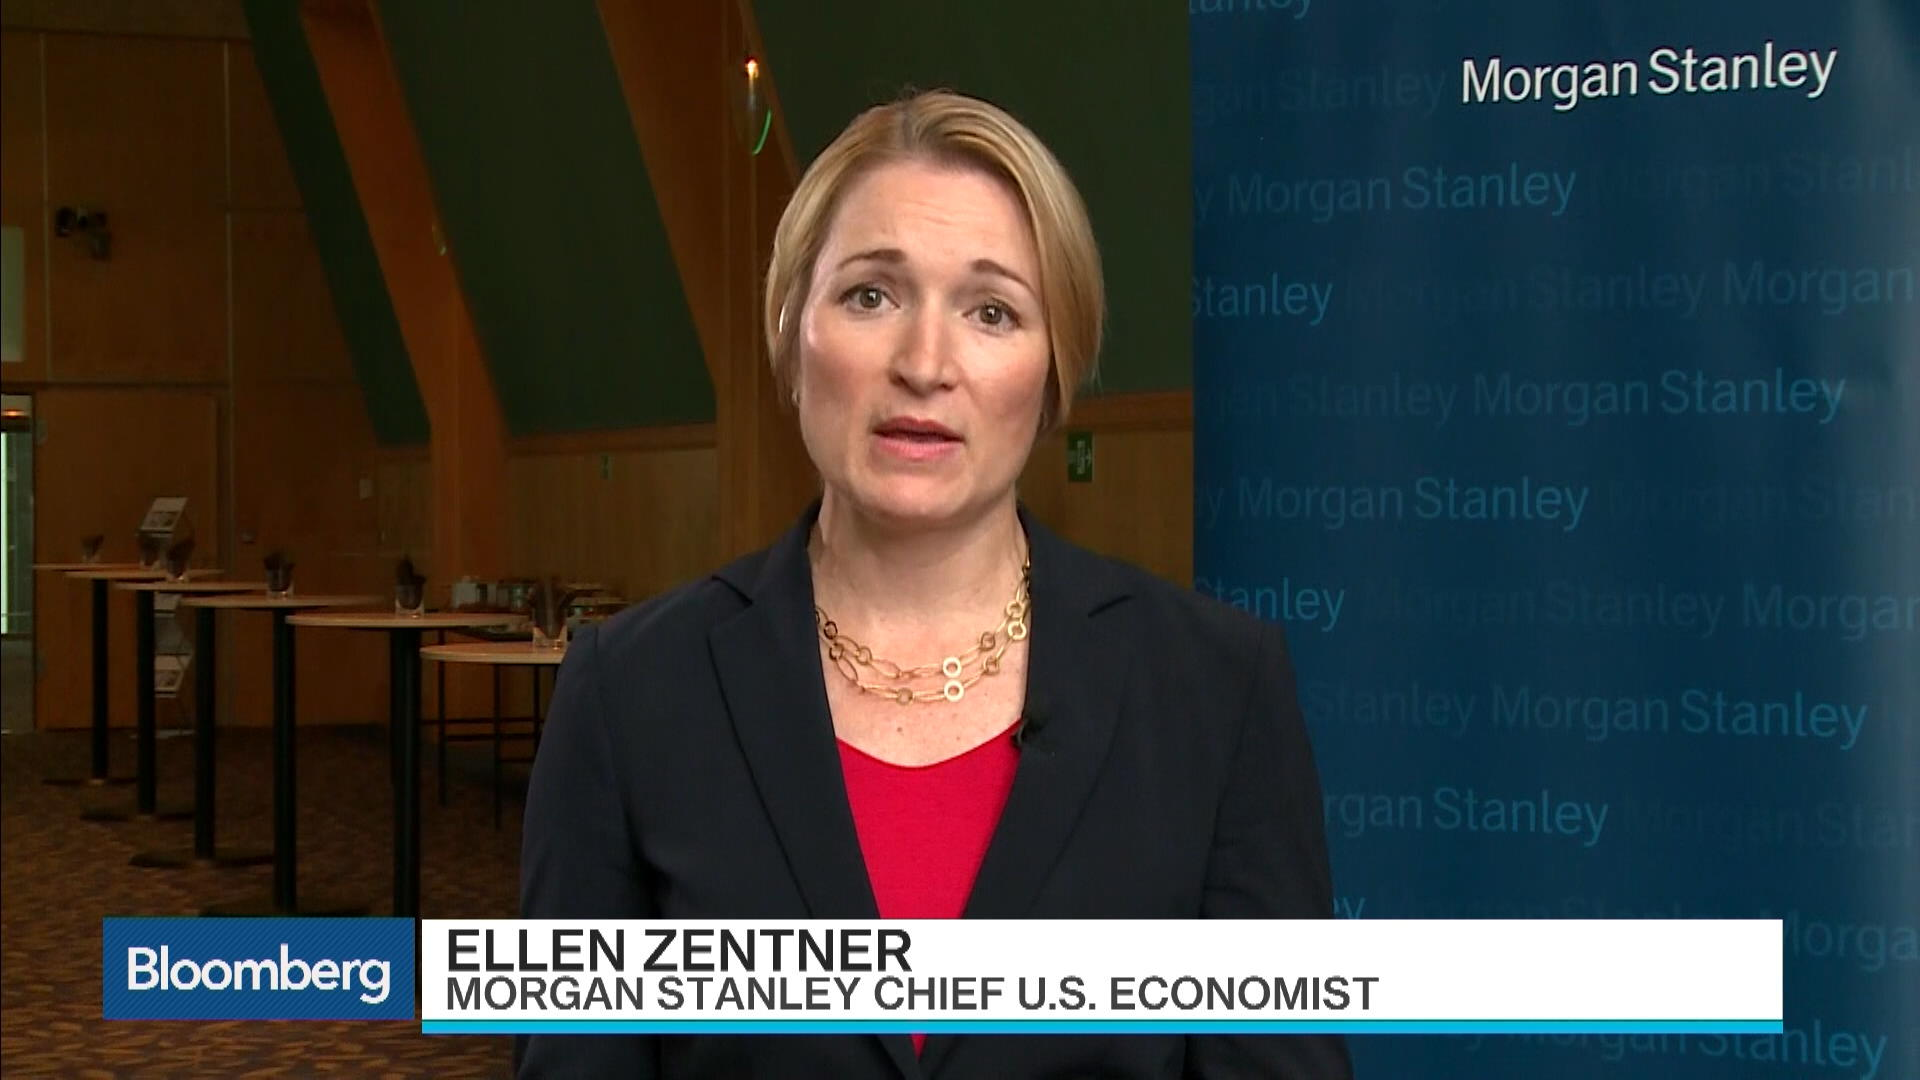 Morgan Stanley S Zentner Sees No Damage From Fed Hikes Bloomberg